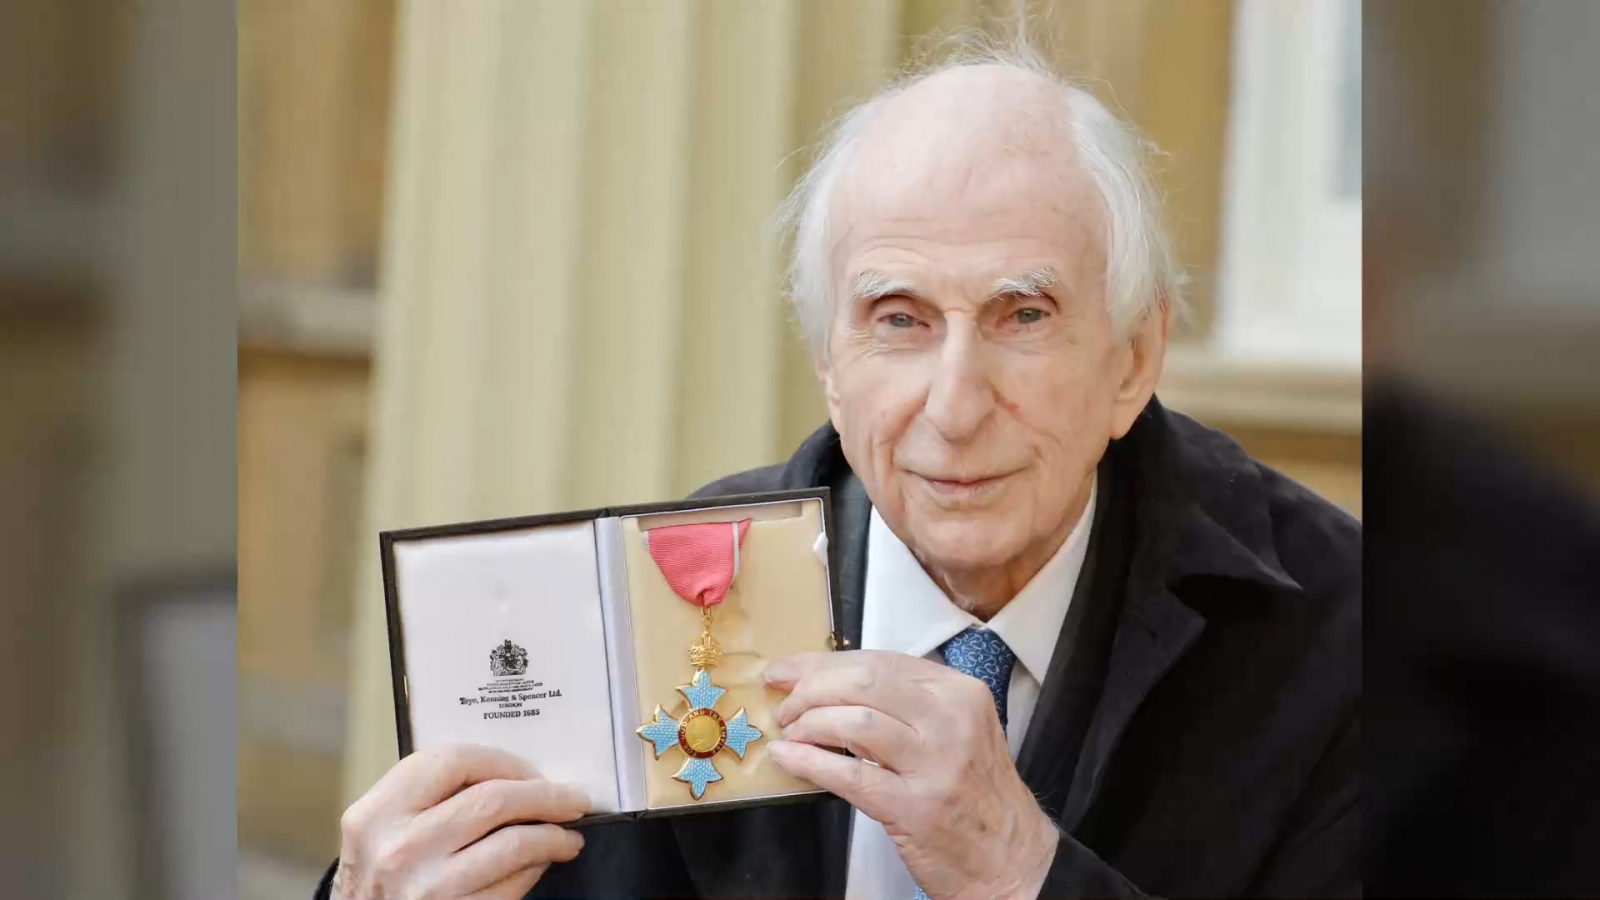 paddington-bear-creator-michael-bond-dies-aged-91